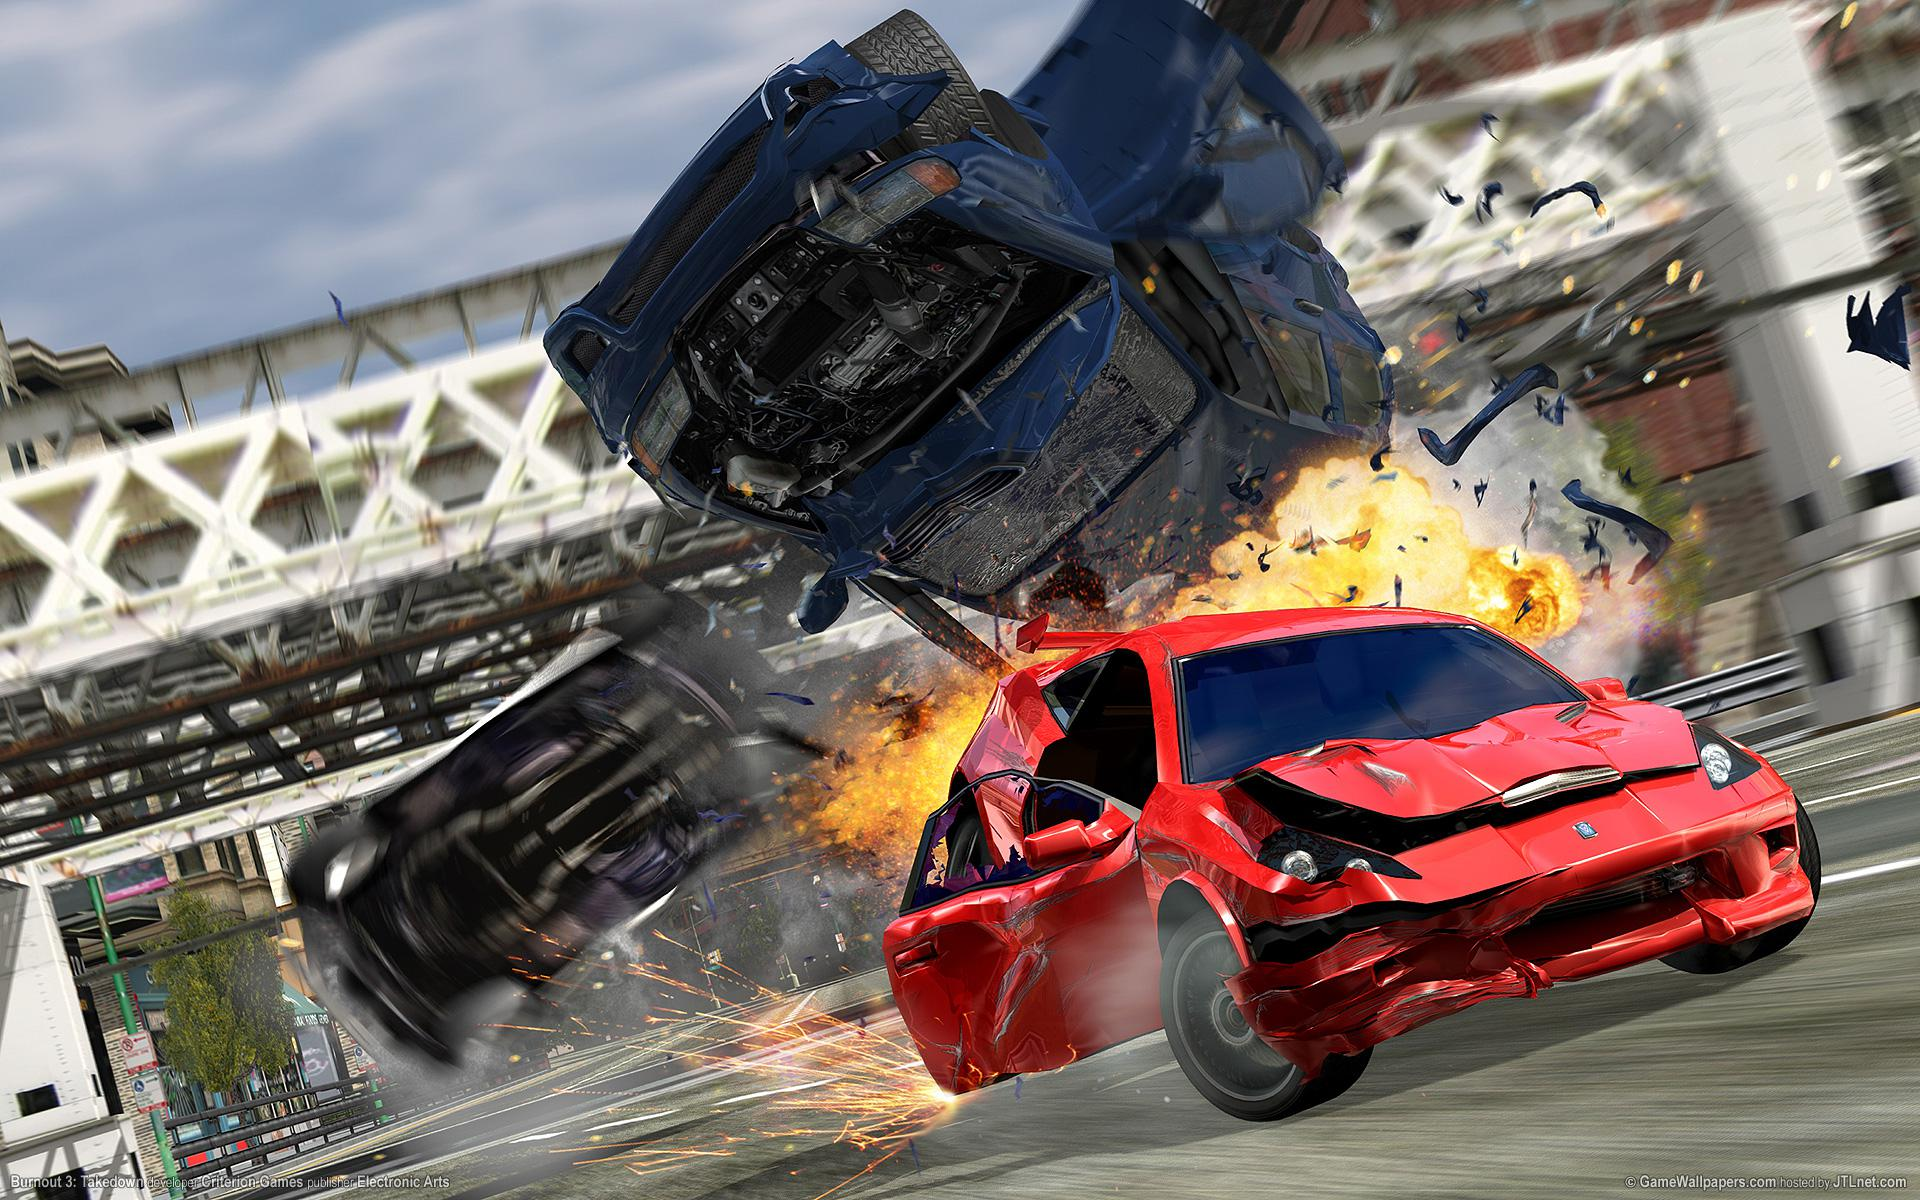 Burnout features some of the greatest crashes we've ever seen and is still highly playable today